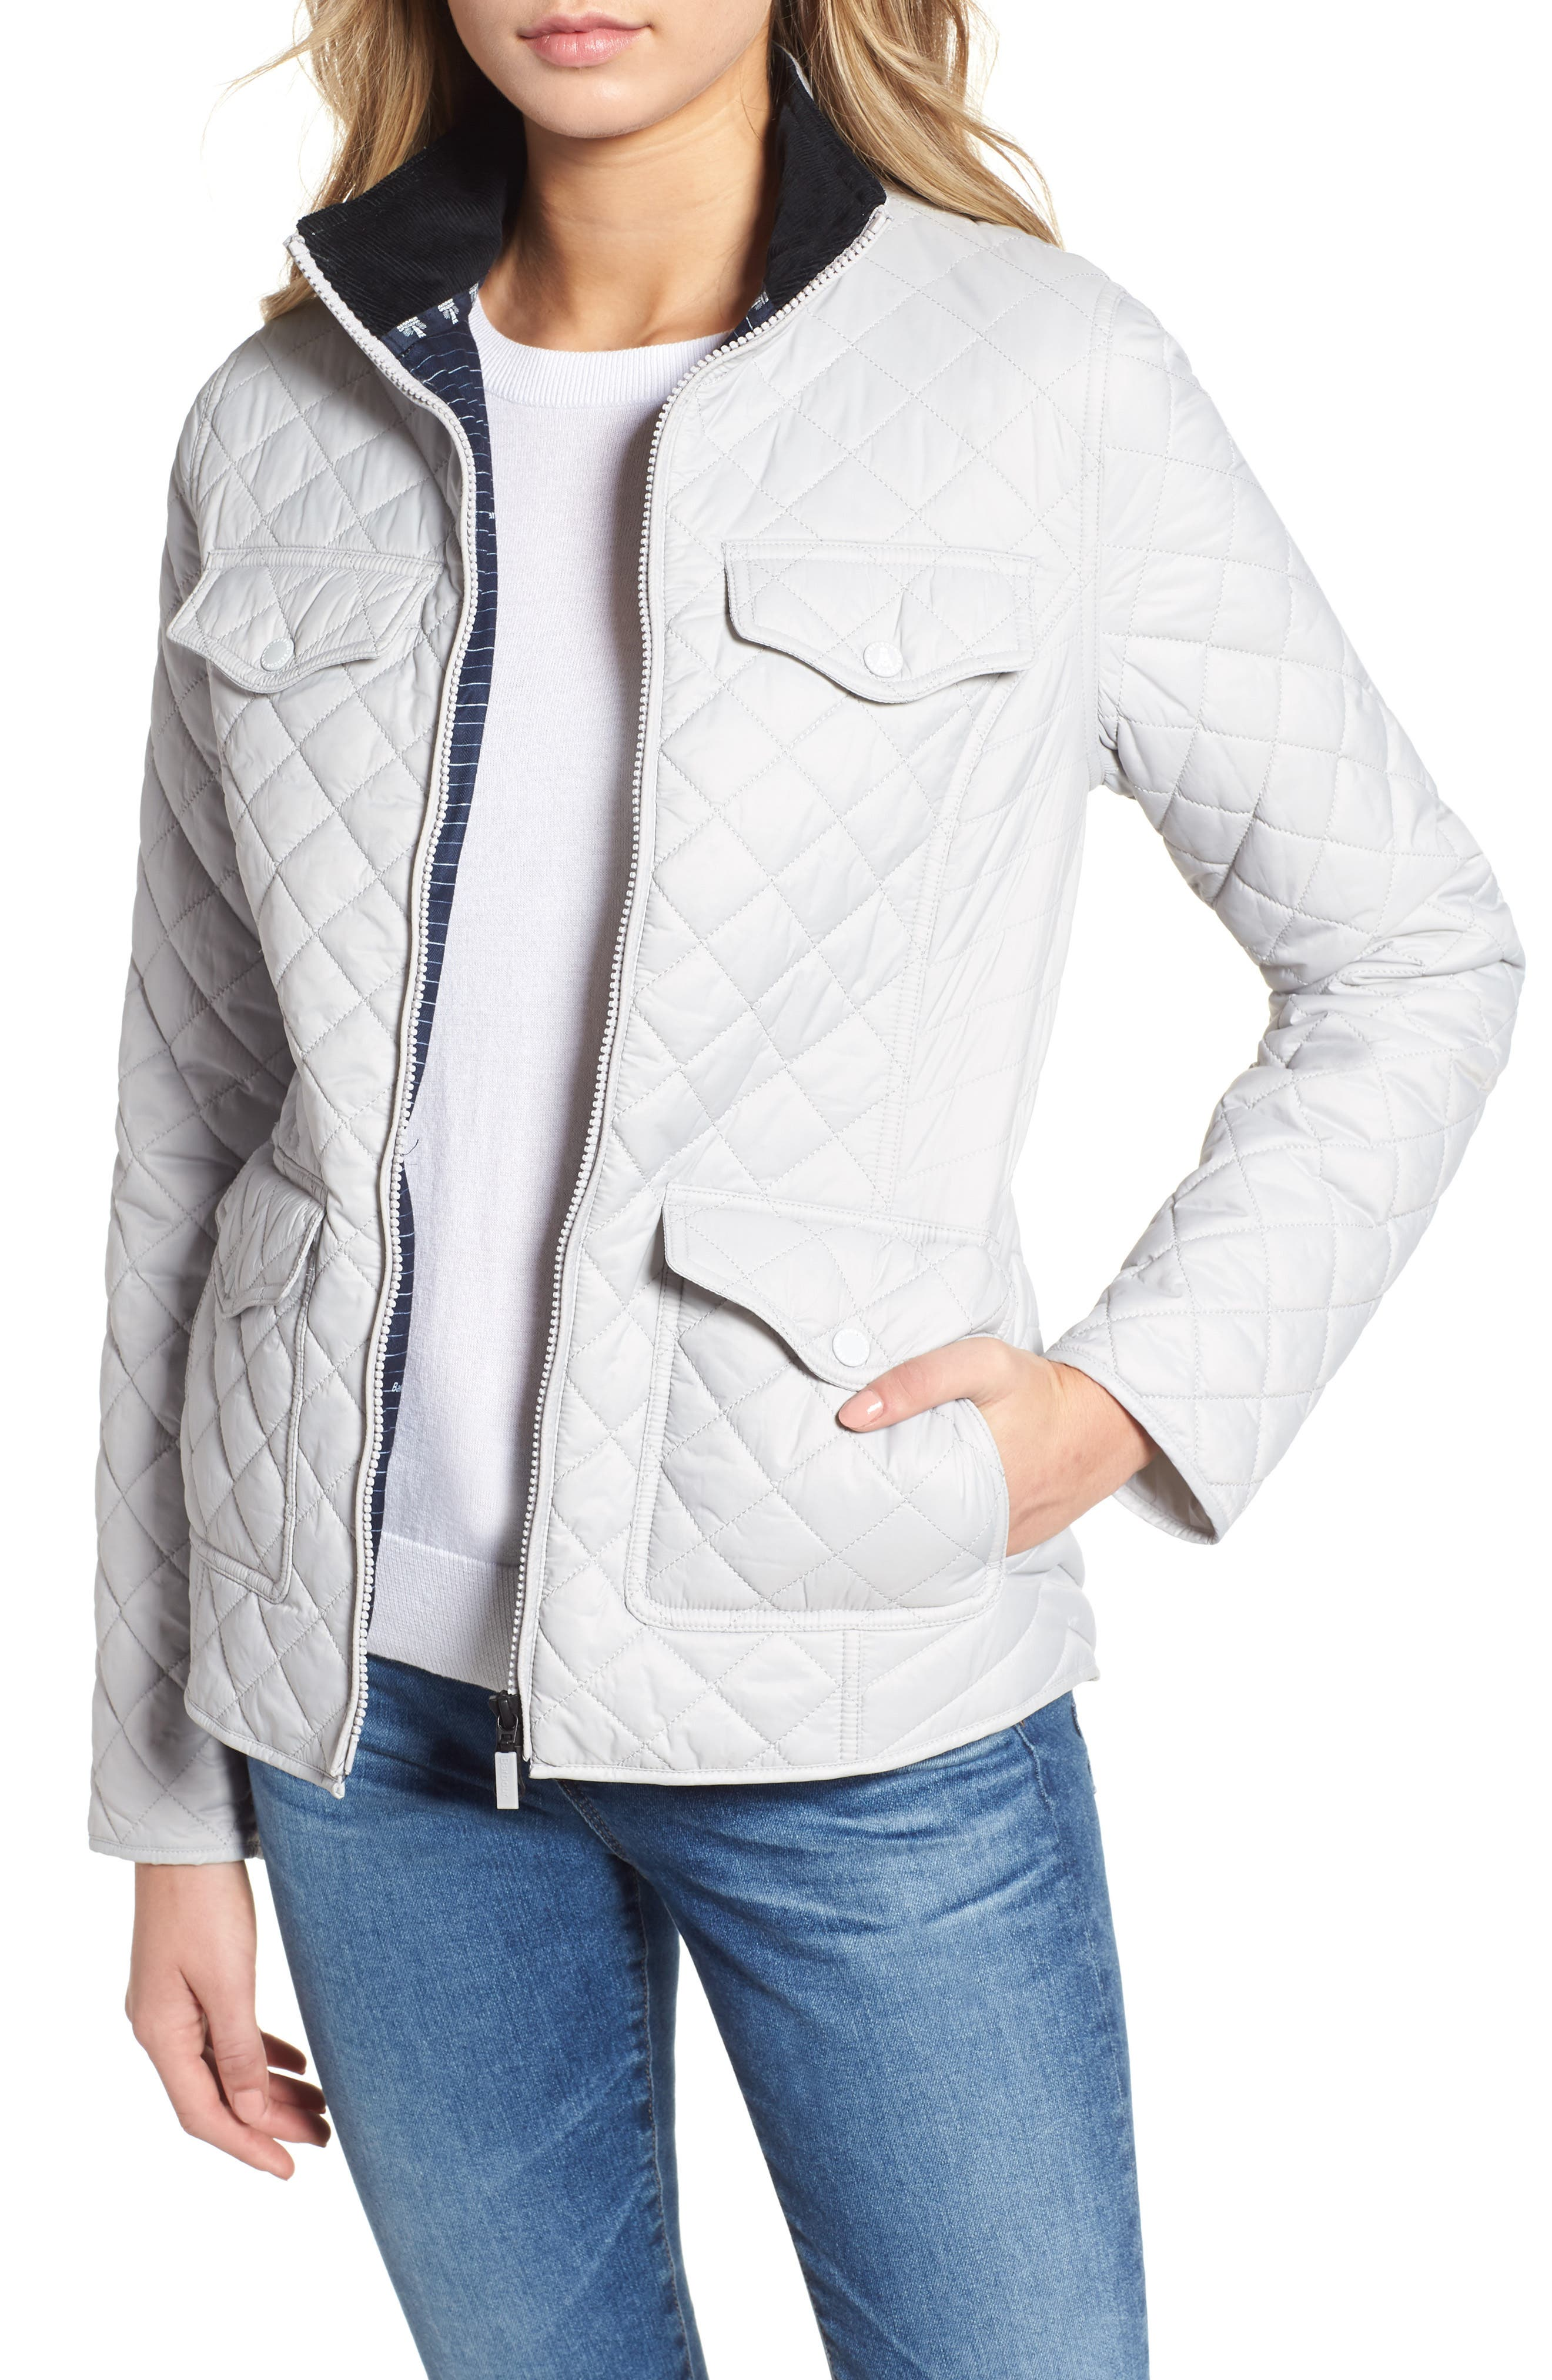 Barbour Sailboat Quilted Jacket, US / 14 UK - White